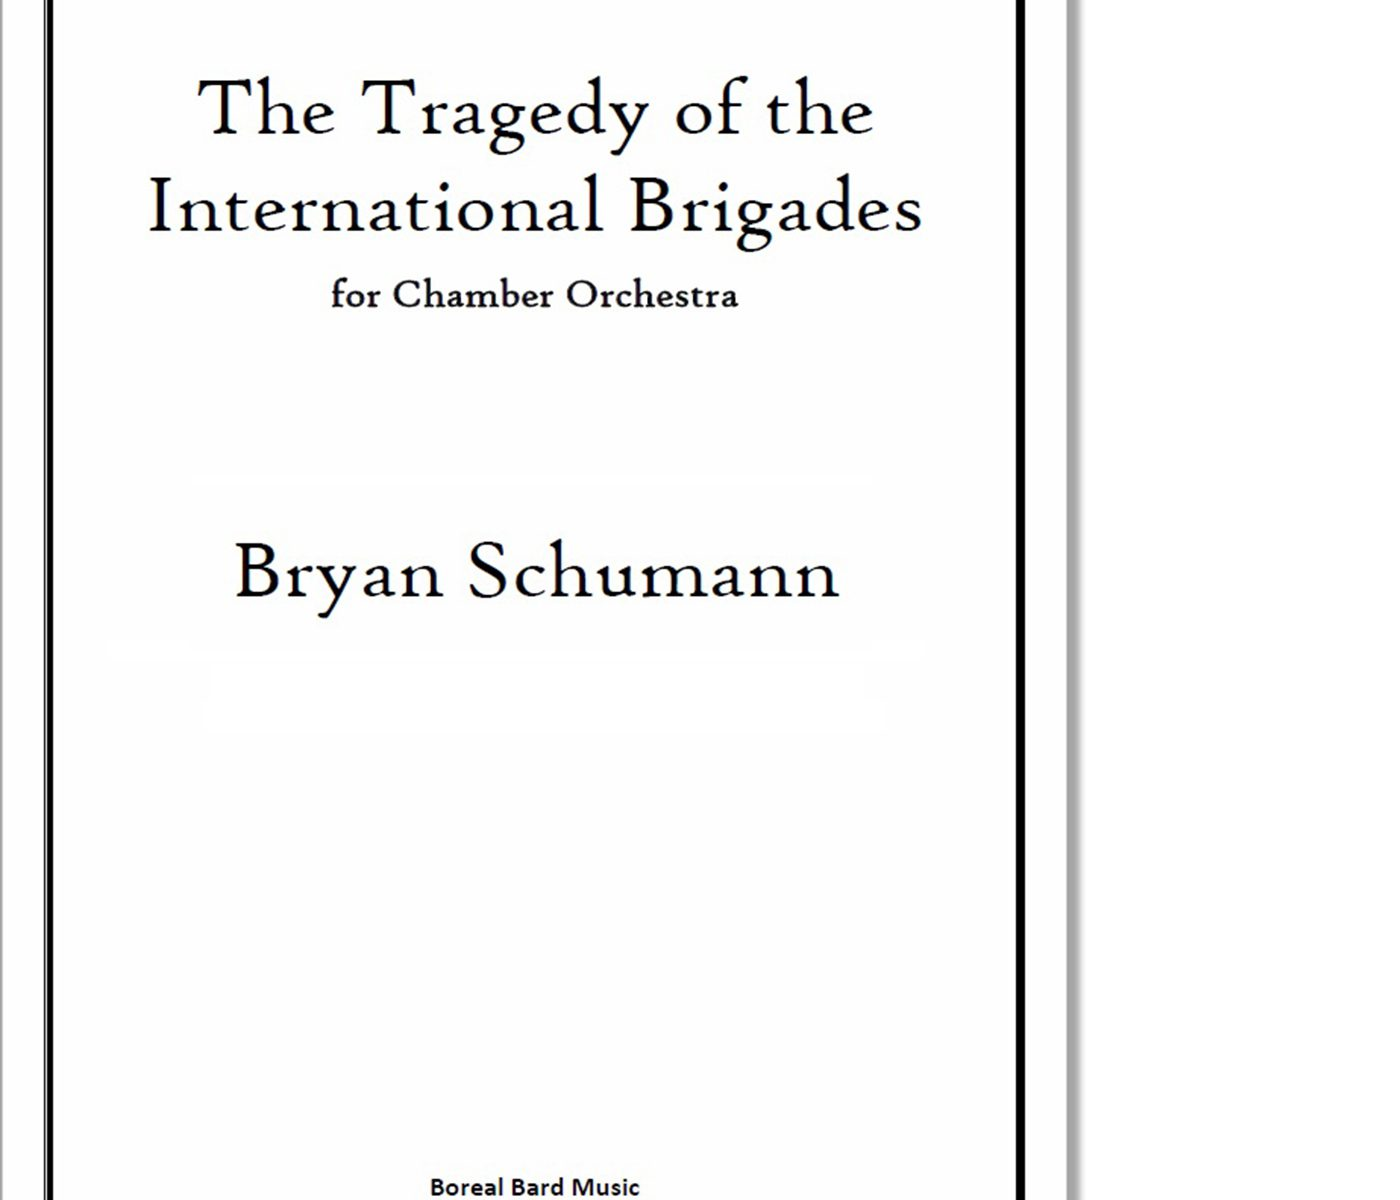 The Tragedy of the International Brigades - Sheet Music Product Image